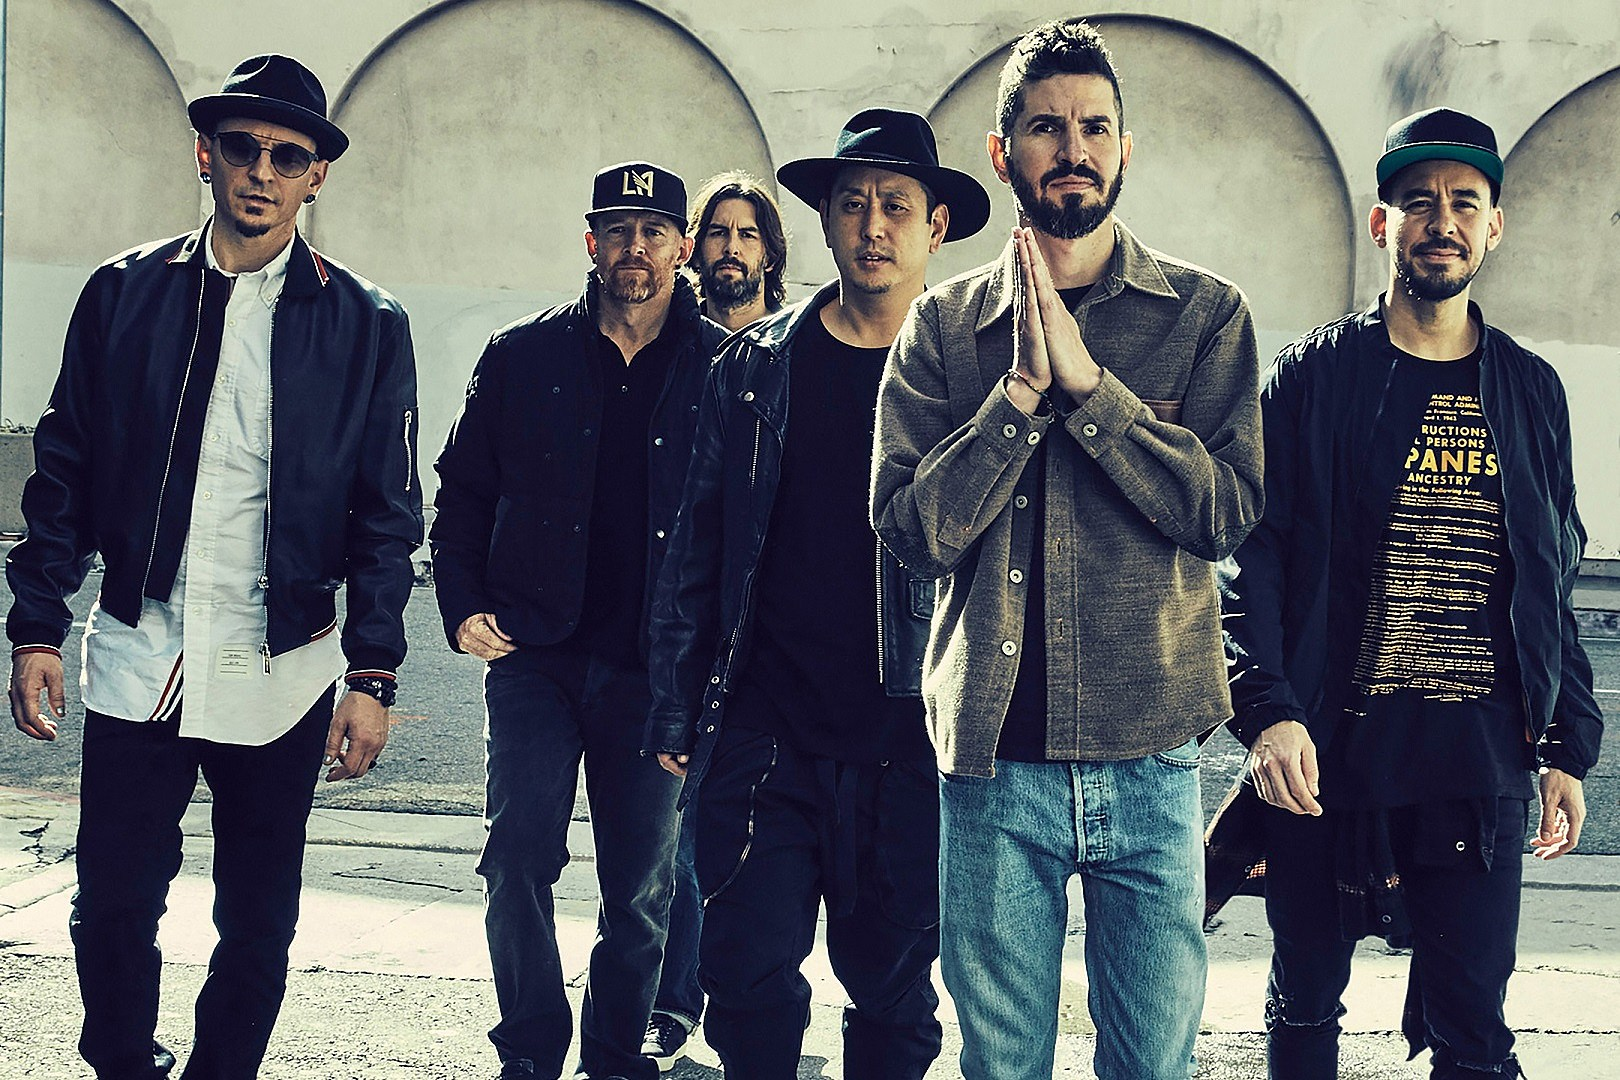 Linkin Park's 'Numb' Video Exceeds One Billion YouTube Views | The Rock of Rochester